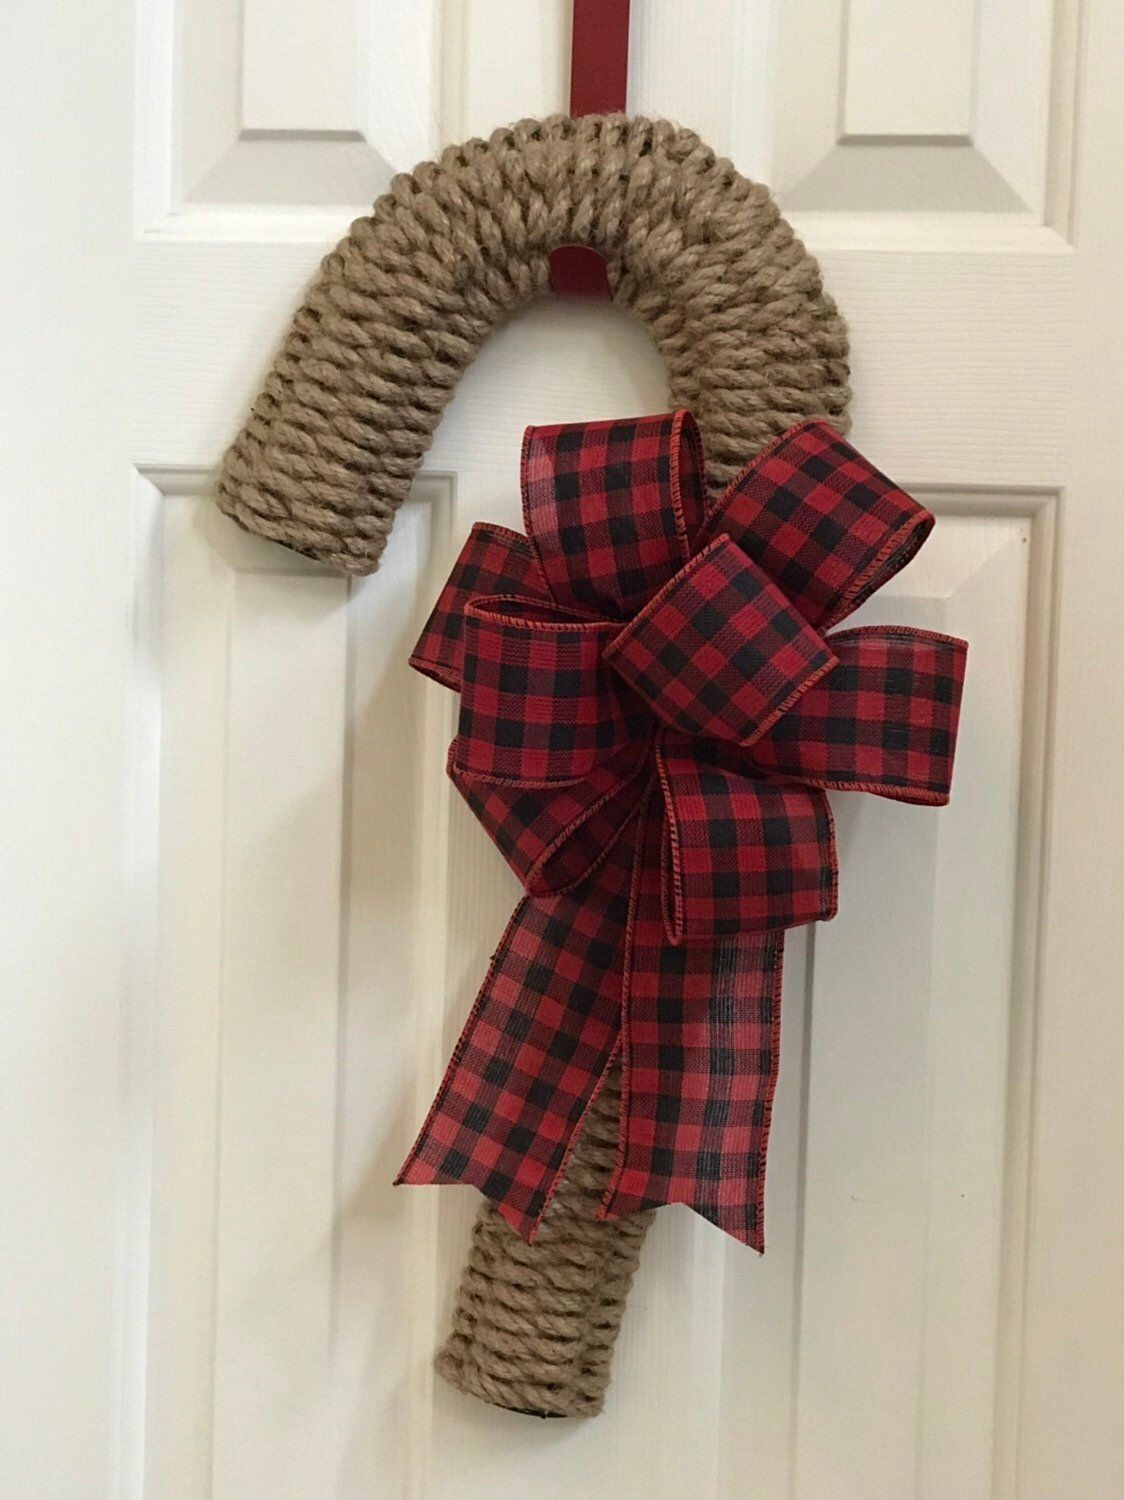 Woven Rope Candy Cane Wreath, Rustic Door Hanger, Christmas Wreath, Buffalo Check, Front Door Wreath, Buffalo Plaid Holiday Decor, Gift #candycanewreath